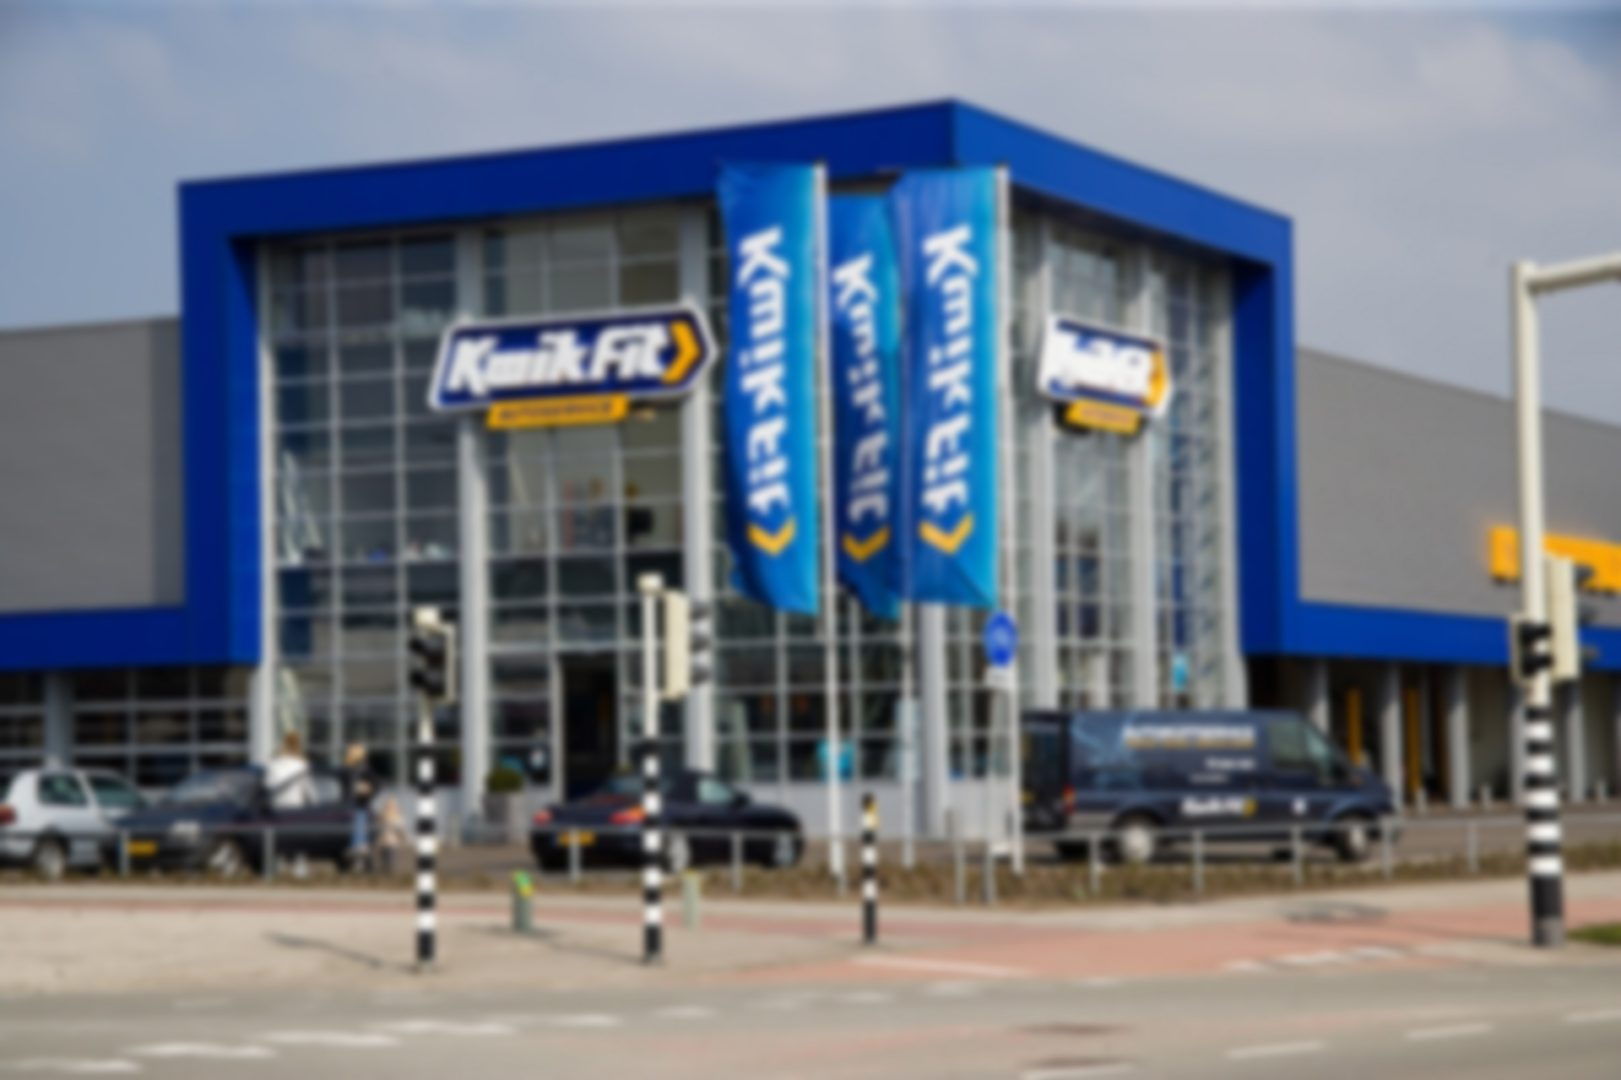 Kwikfit takes the next step in car maintenance and works with MivarGroup to achieve this